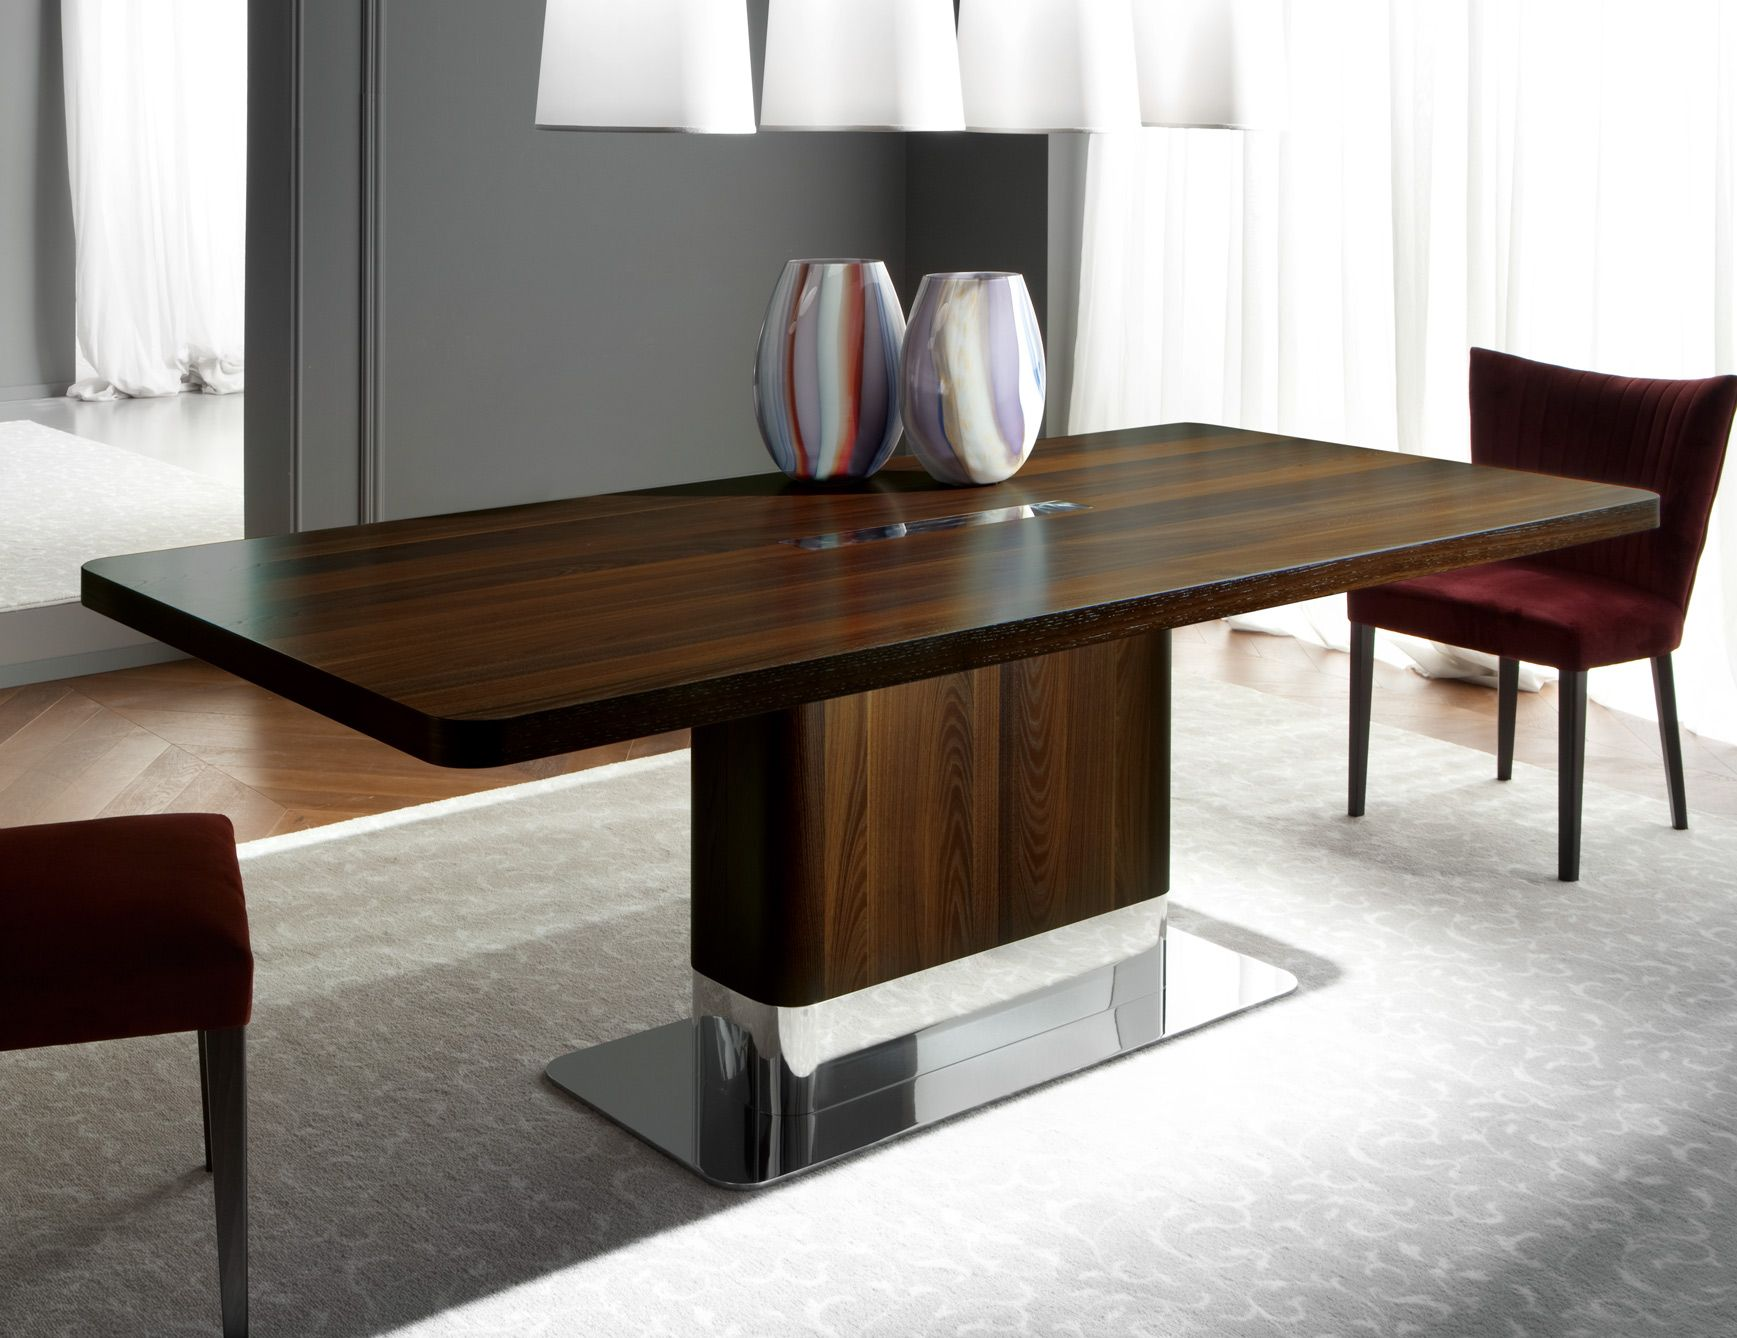 Stainless Steel Dining Room Tables Cool Dining Tables  Park Lane  Meja Makan Antik  Pinterest Review